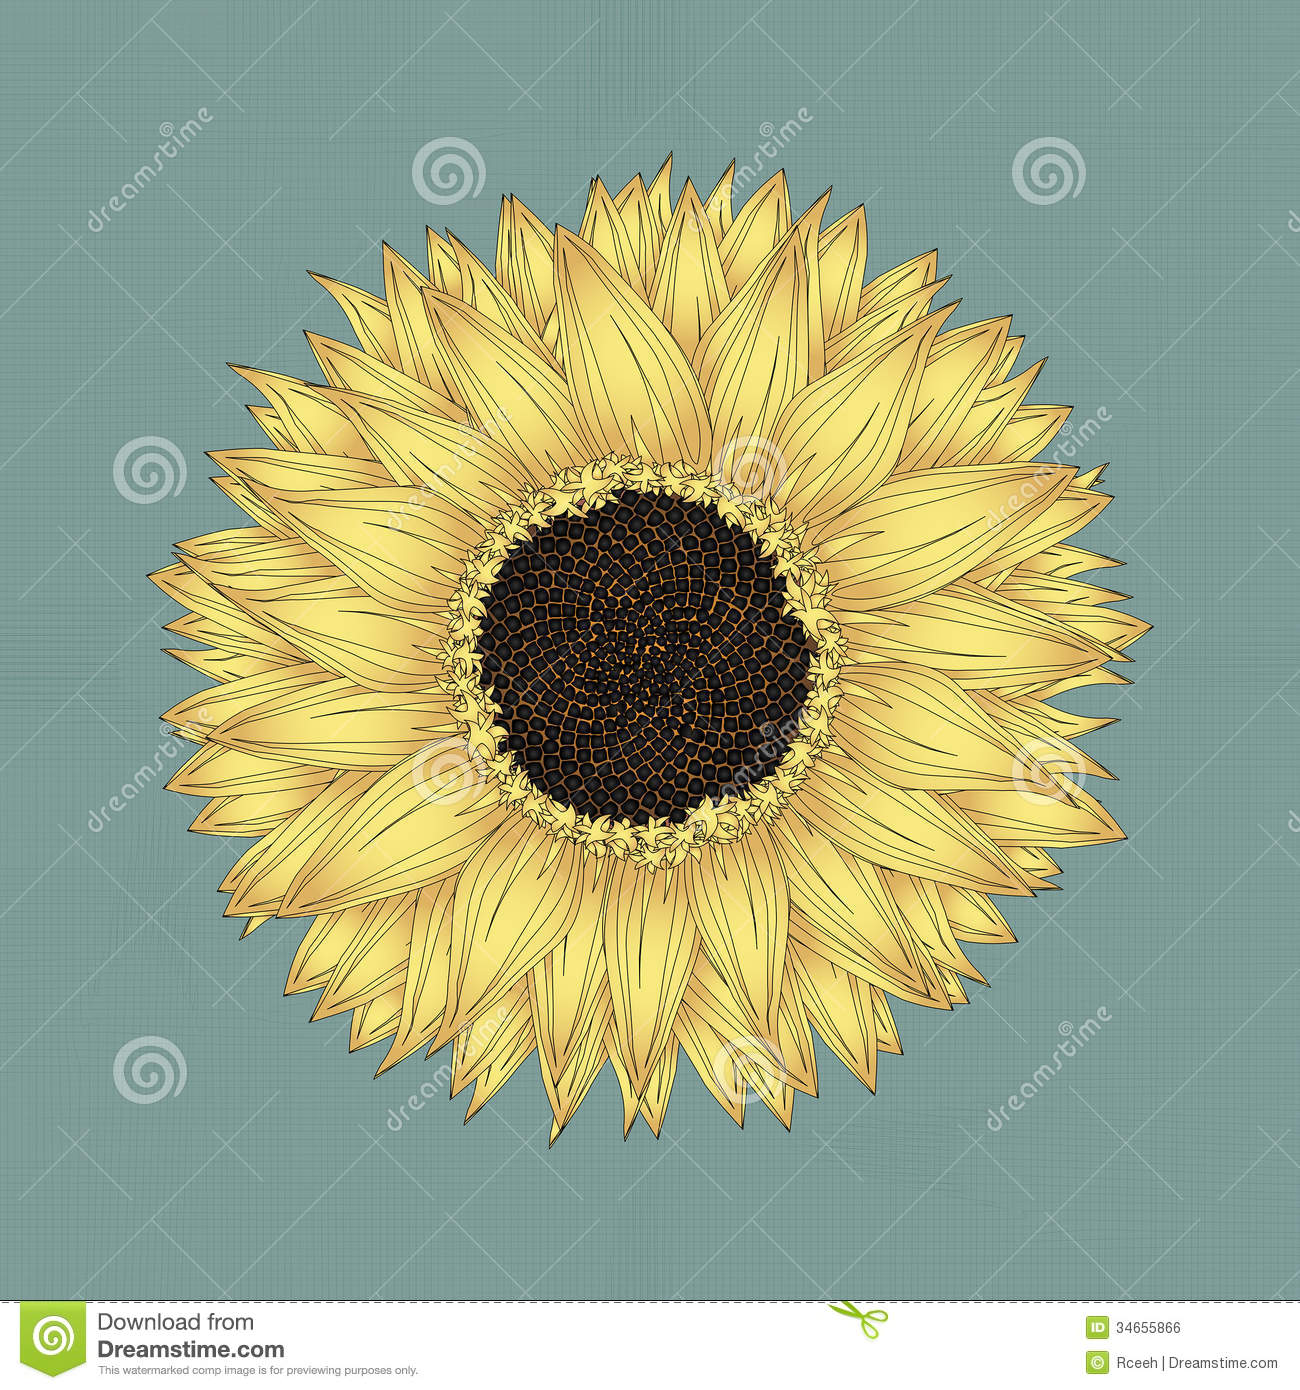 Pendleton (OR) United States  City pictures : Sunflower Drawing Royalty Free Stock Image Image: 34655866